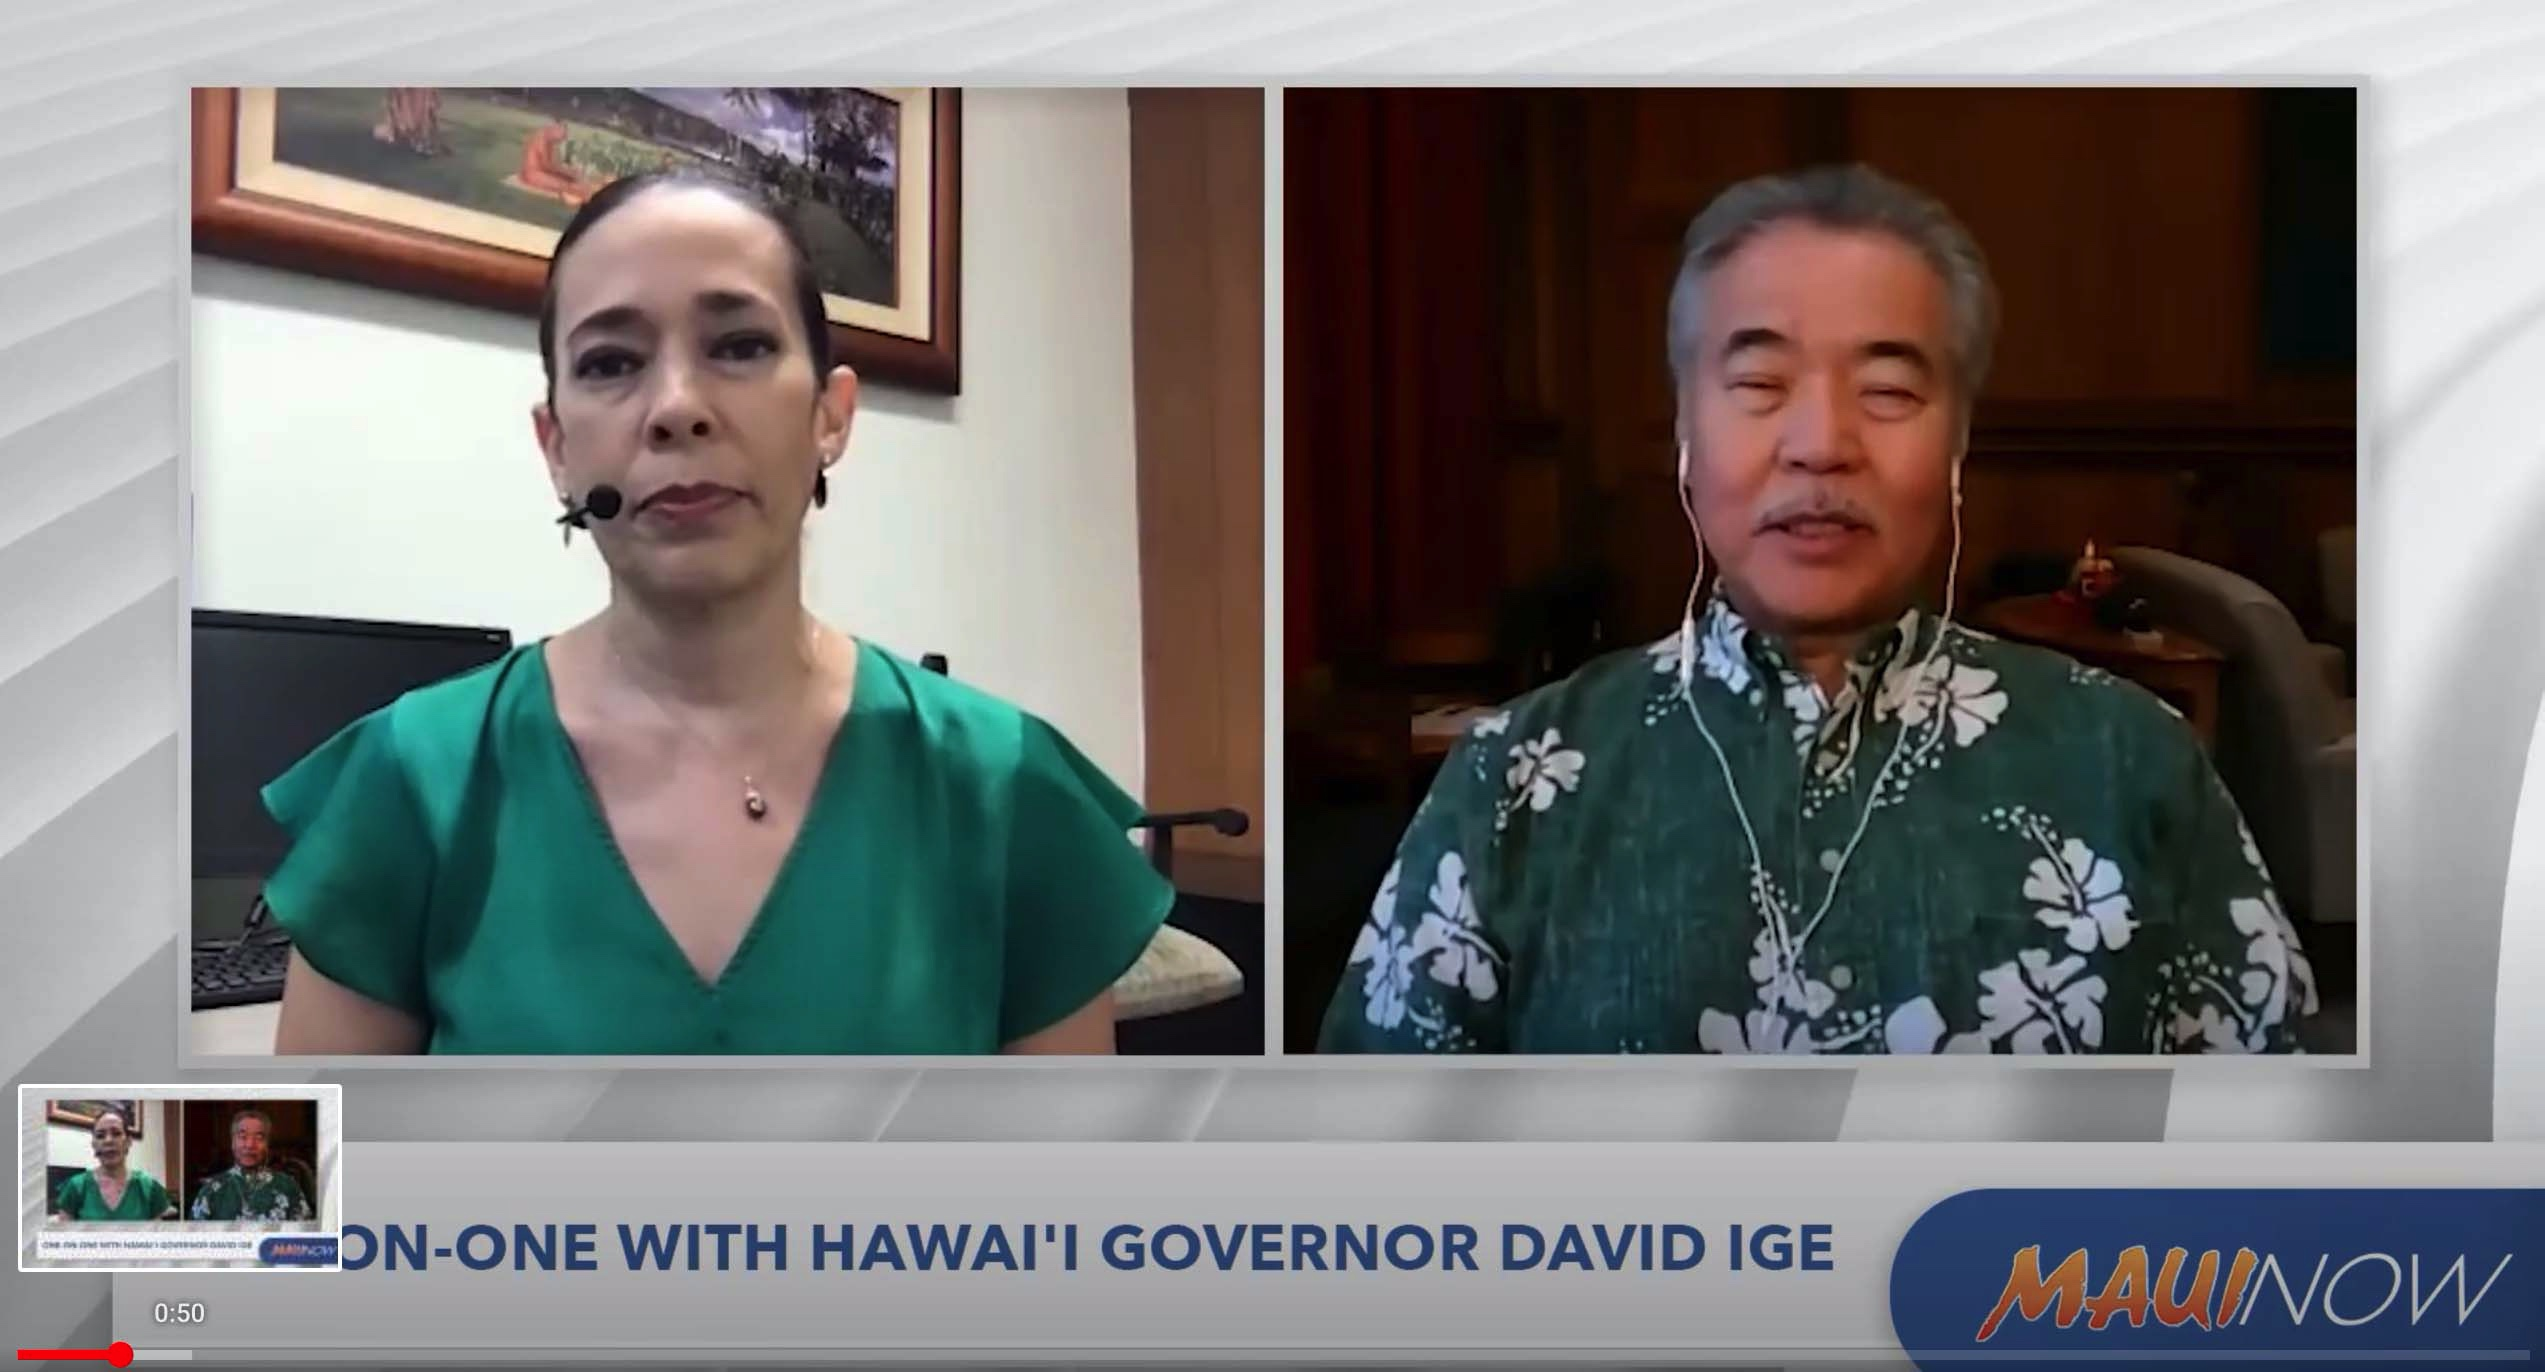 MauiNow's Wendy Osher interviews Governor David Ige on Hawai'i 's Ongoing COVID-19 Pandemic Response